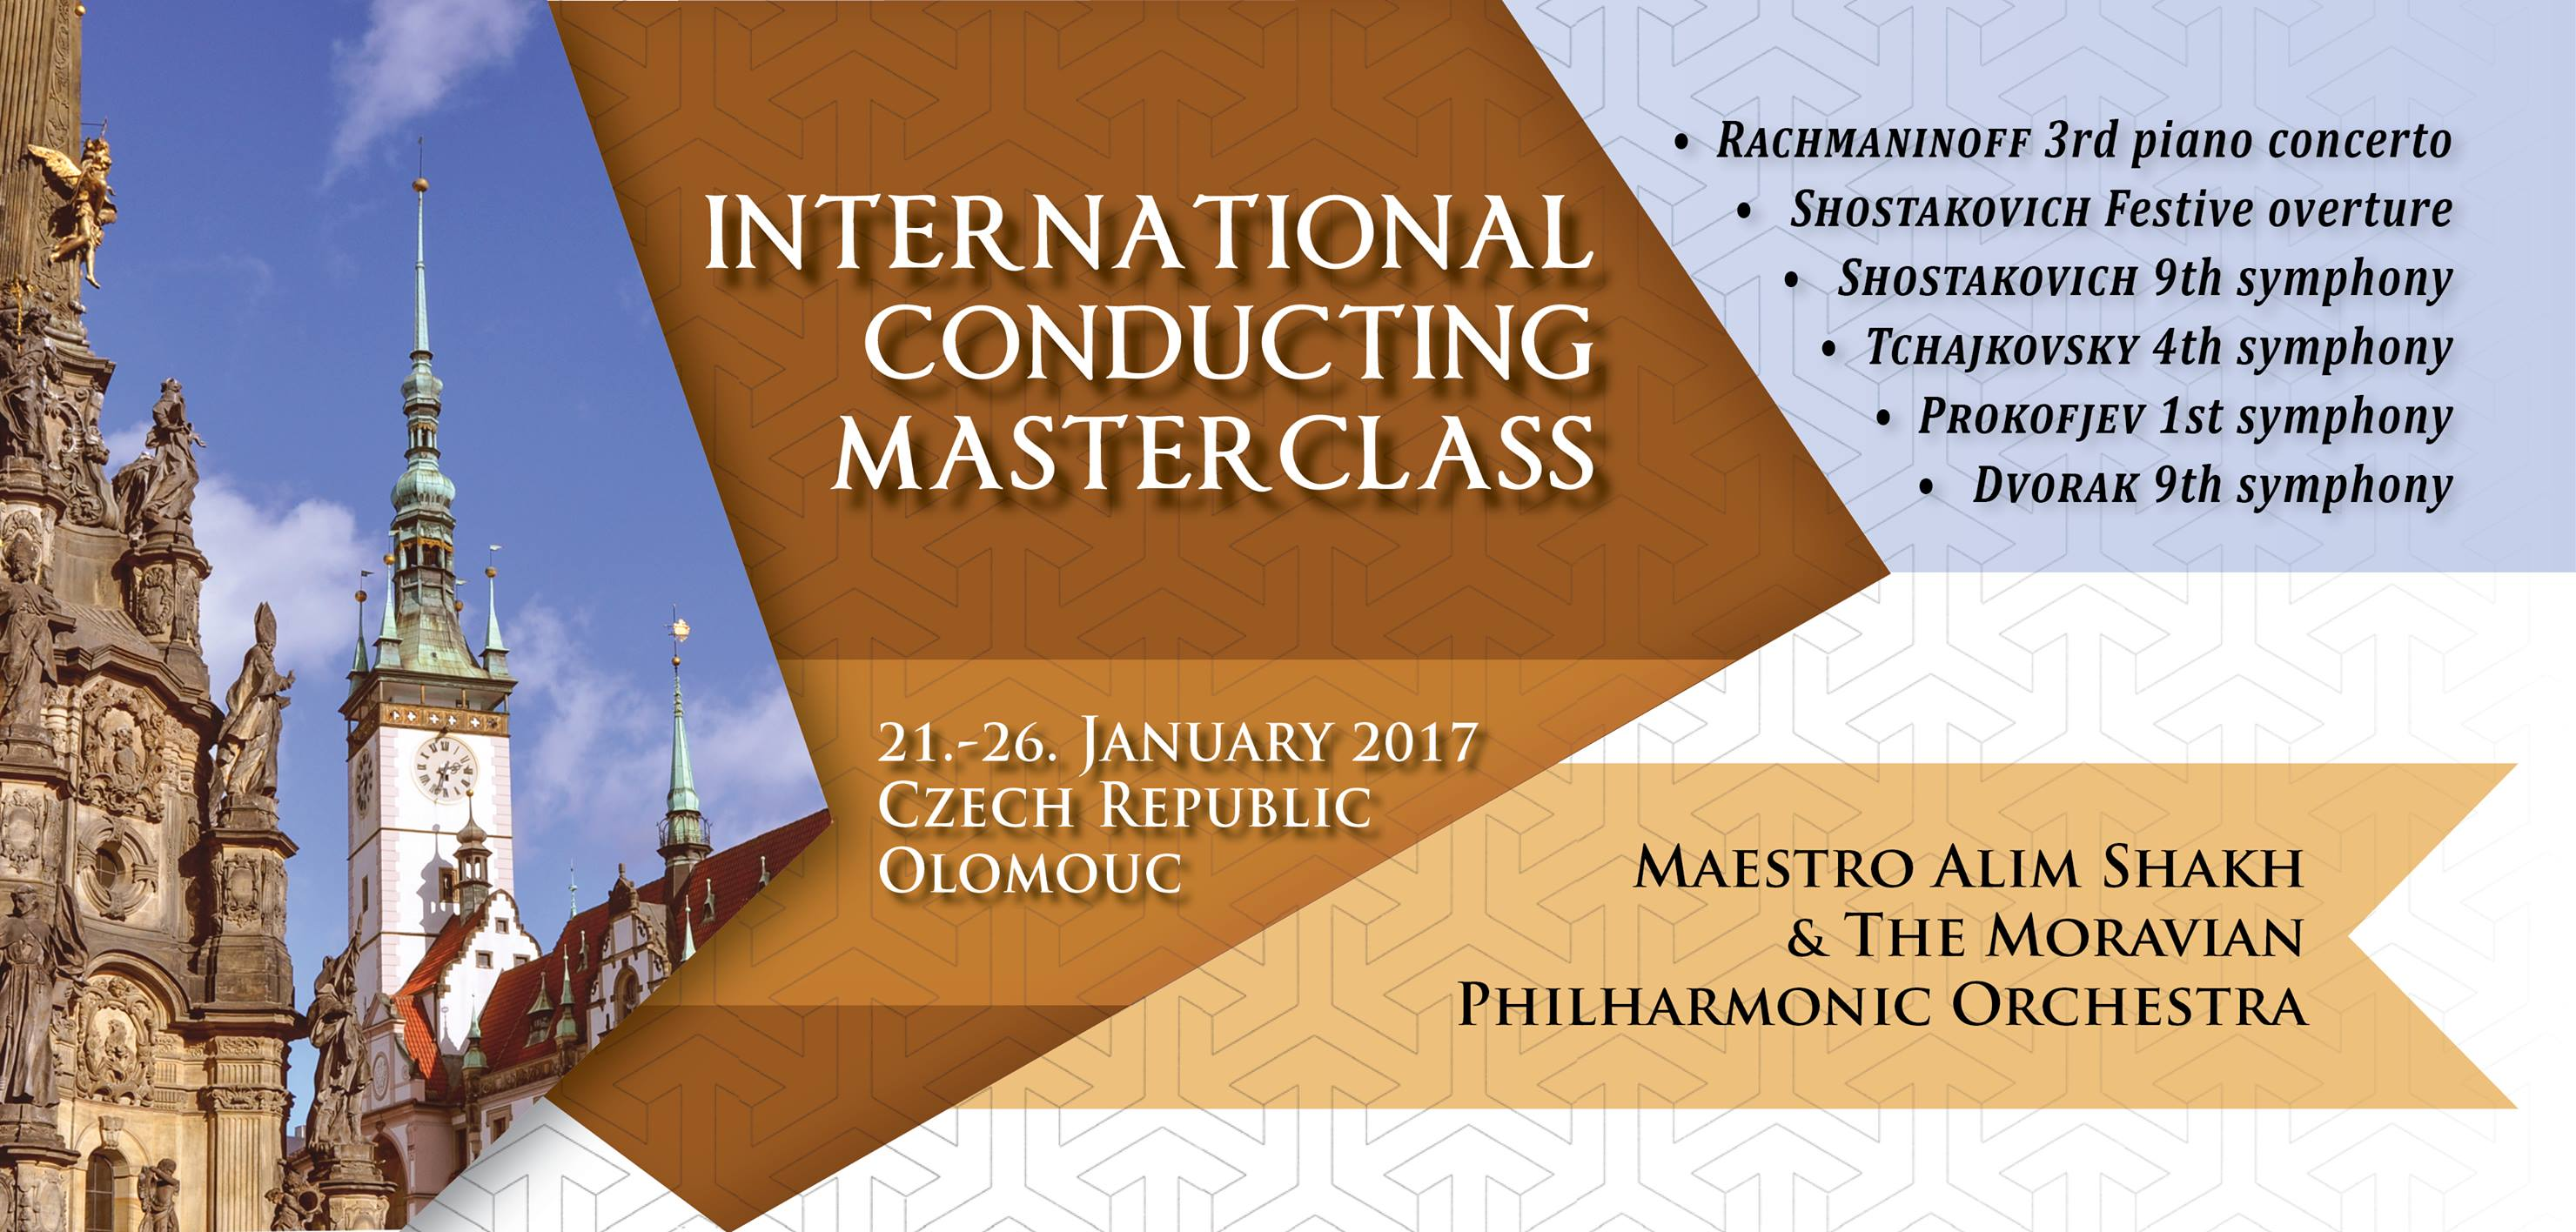 Orchestral conducting masterclass